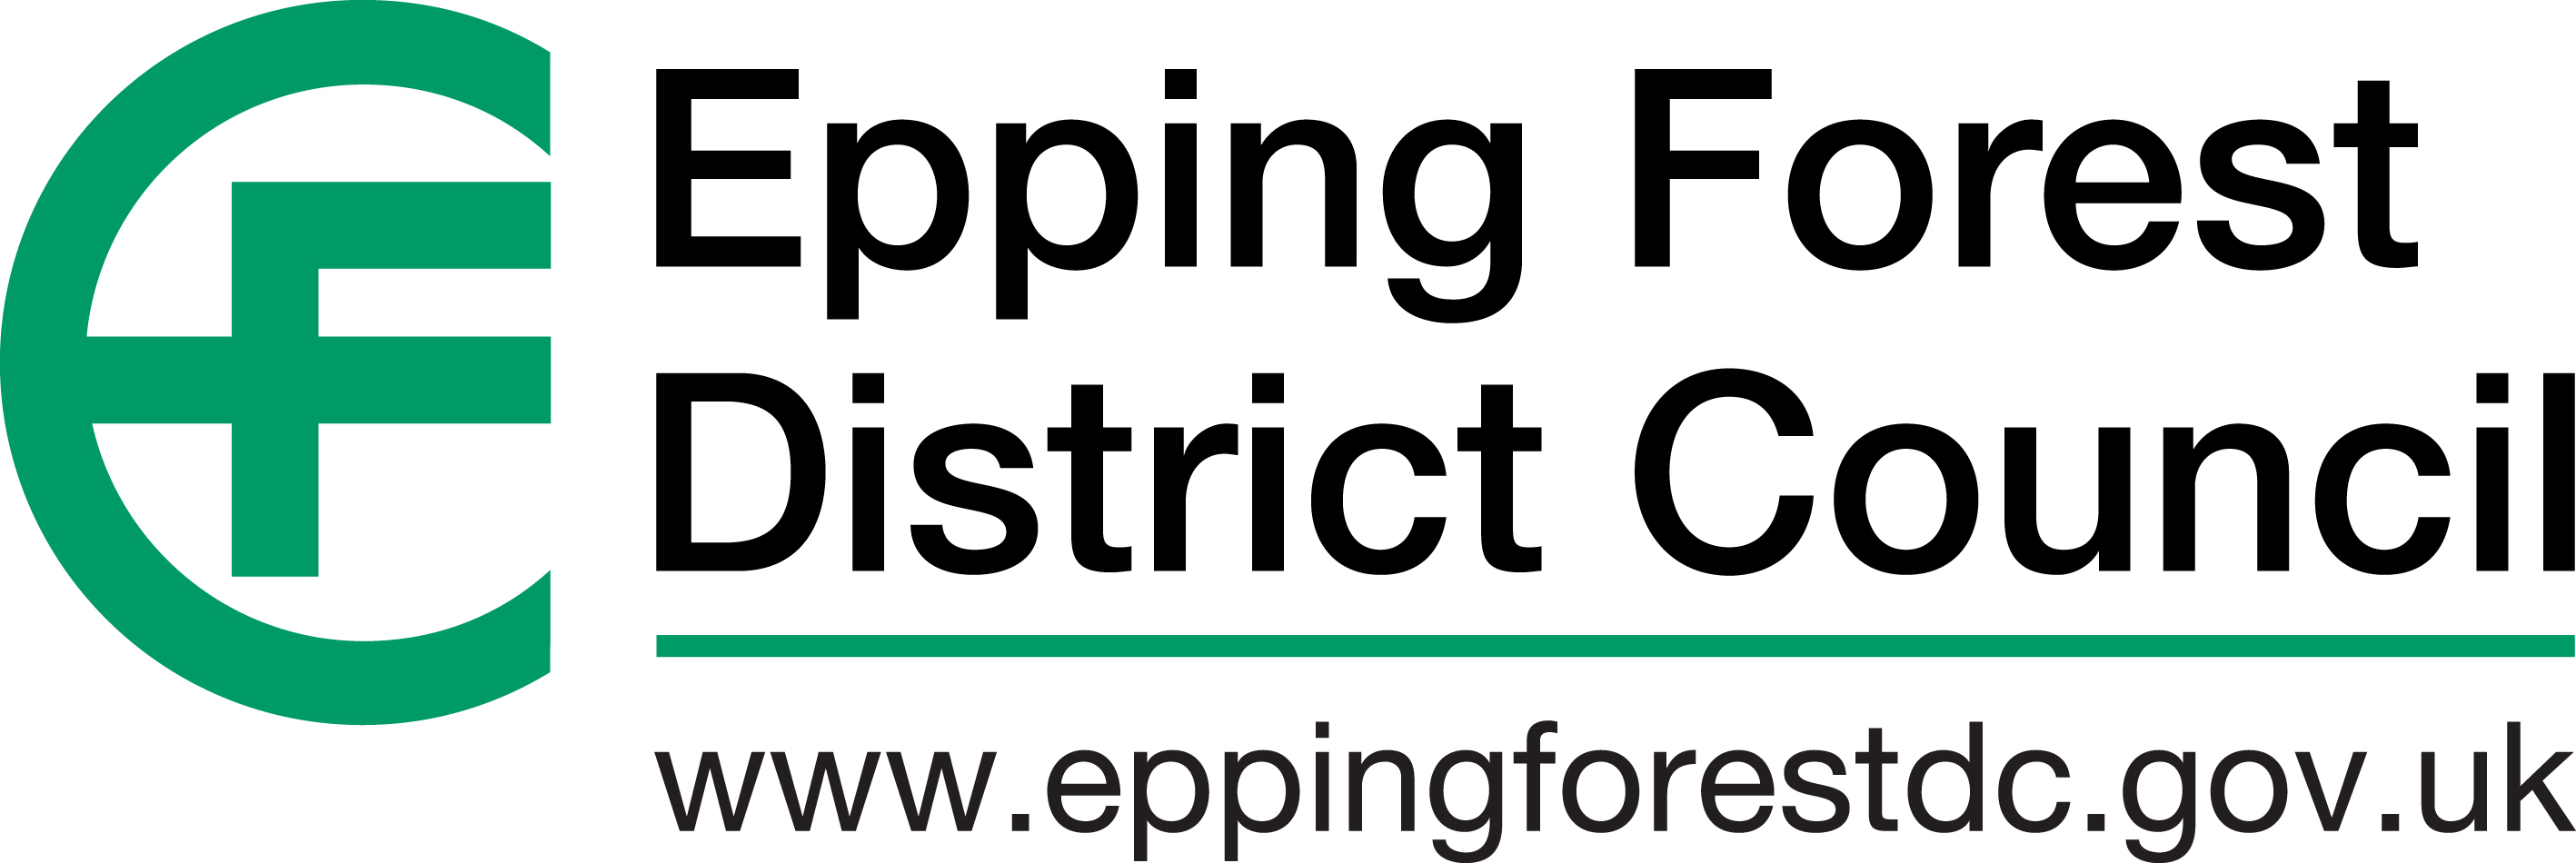 epping forest website planning application